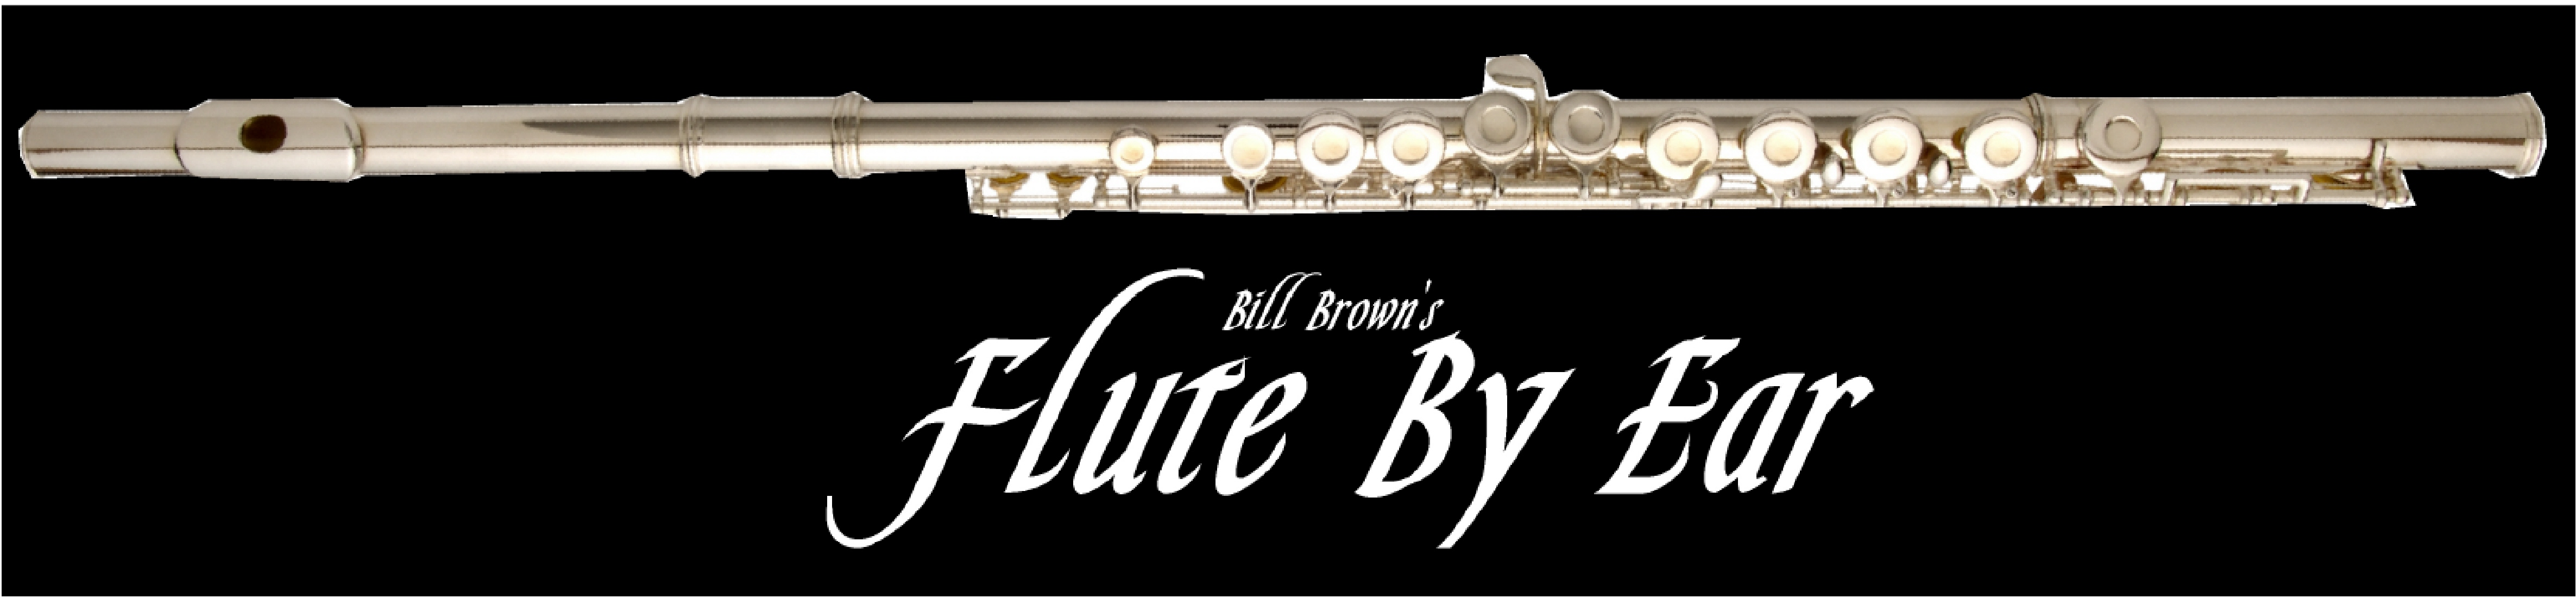 Downloadable Flute